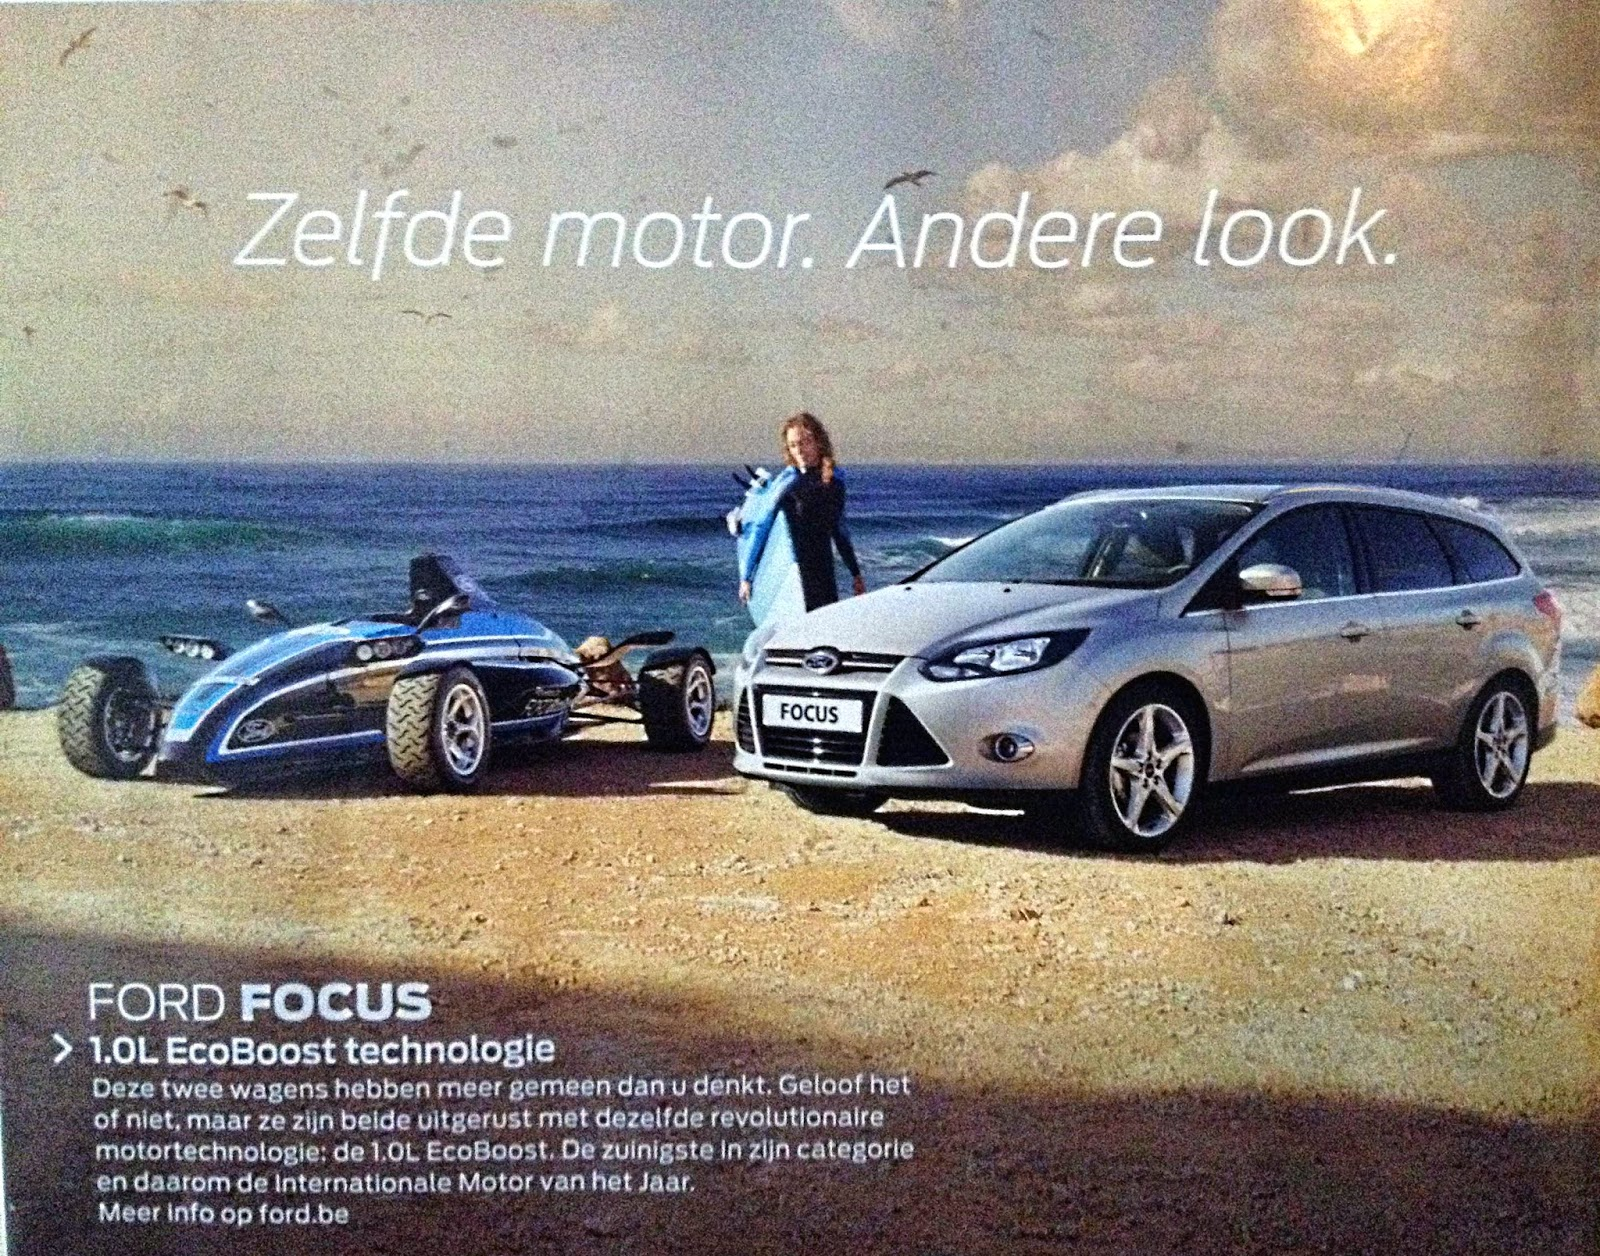 Ford Focus golfsurfen surfing advertentie